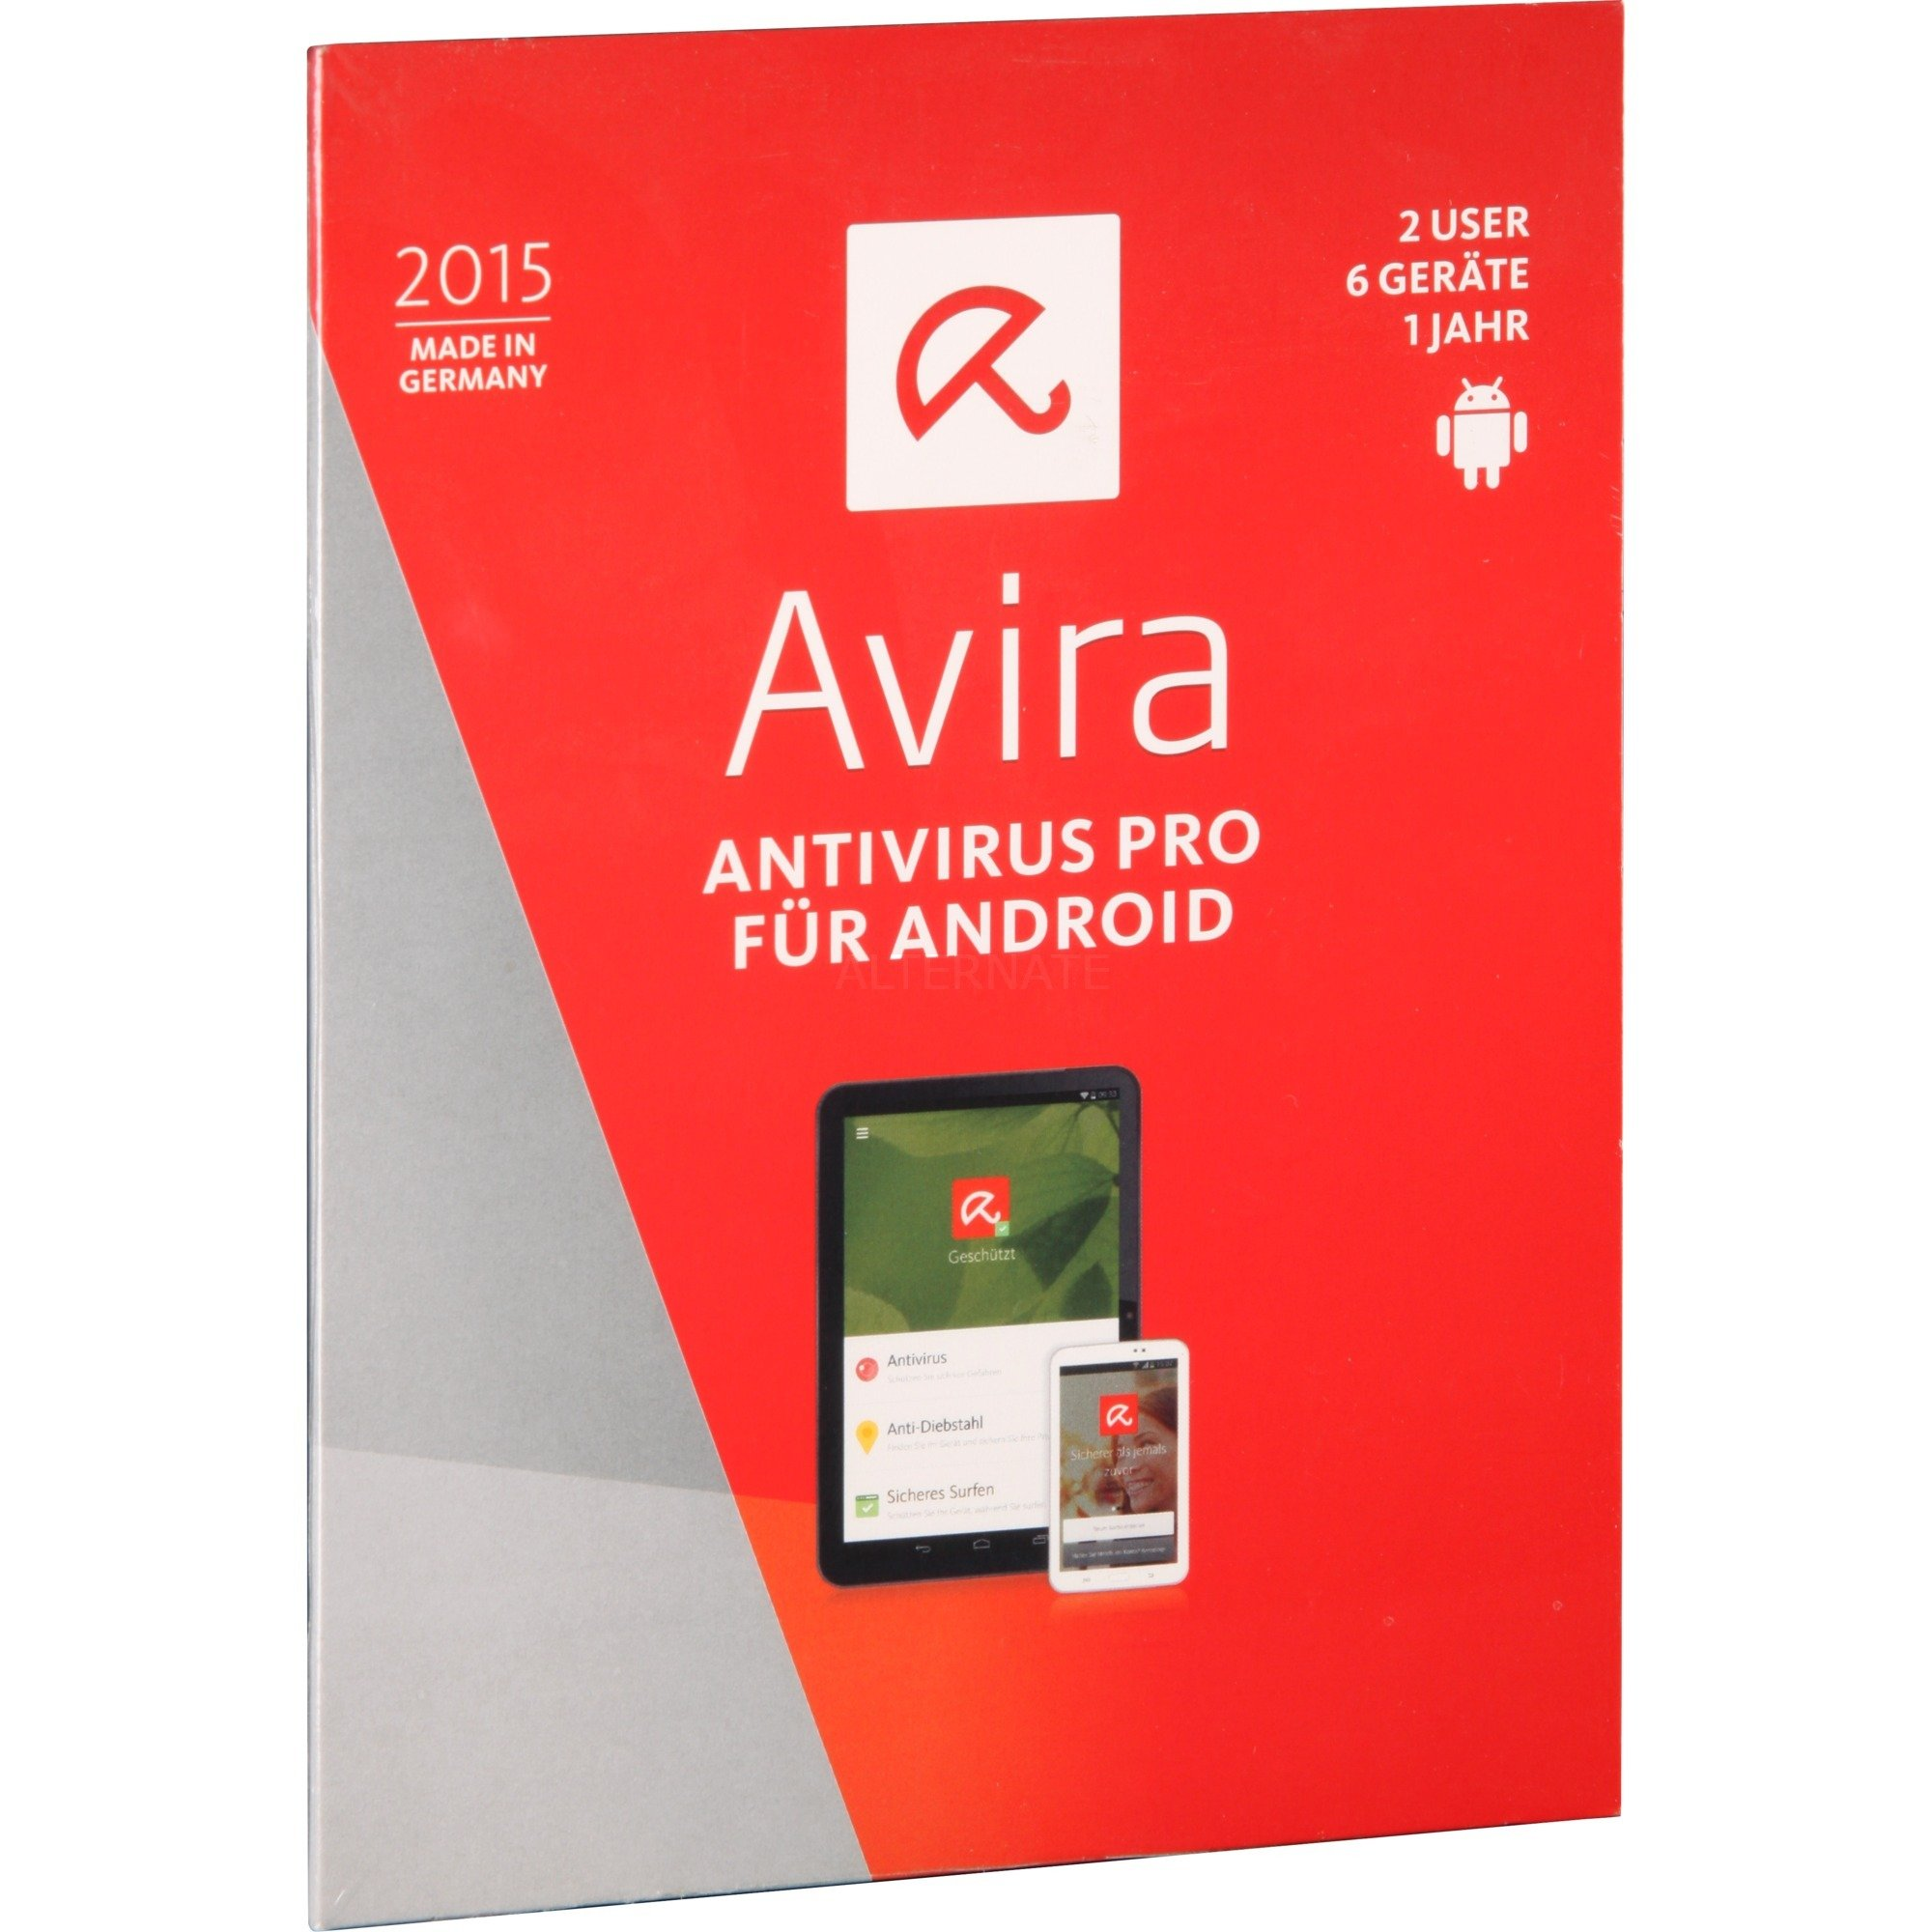 Antivirus Pro for Mobile, Software